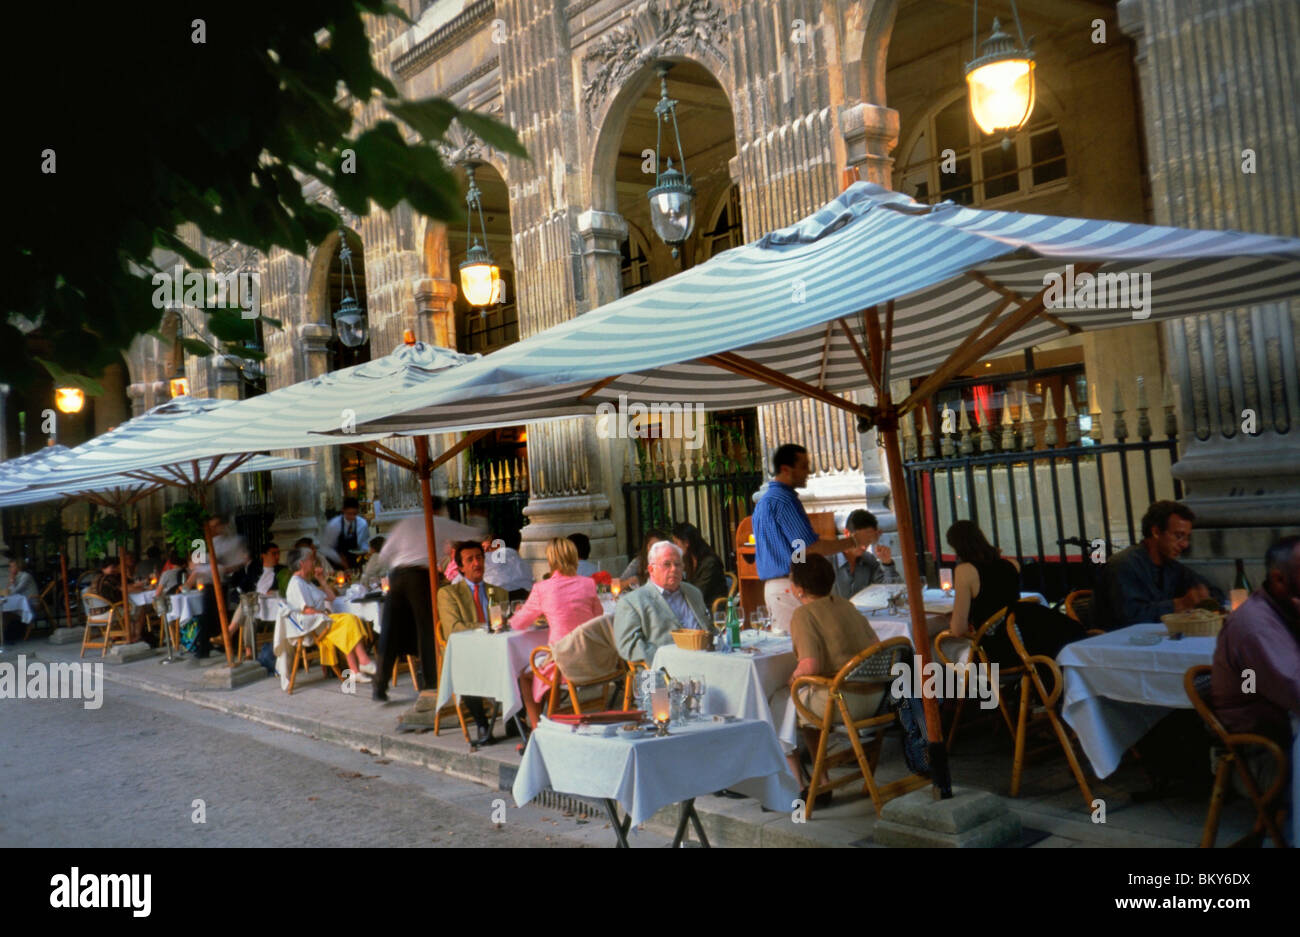 Paris France Crowd Eating At Tables French Cafe Bistro Stock Photo Alamy